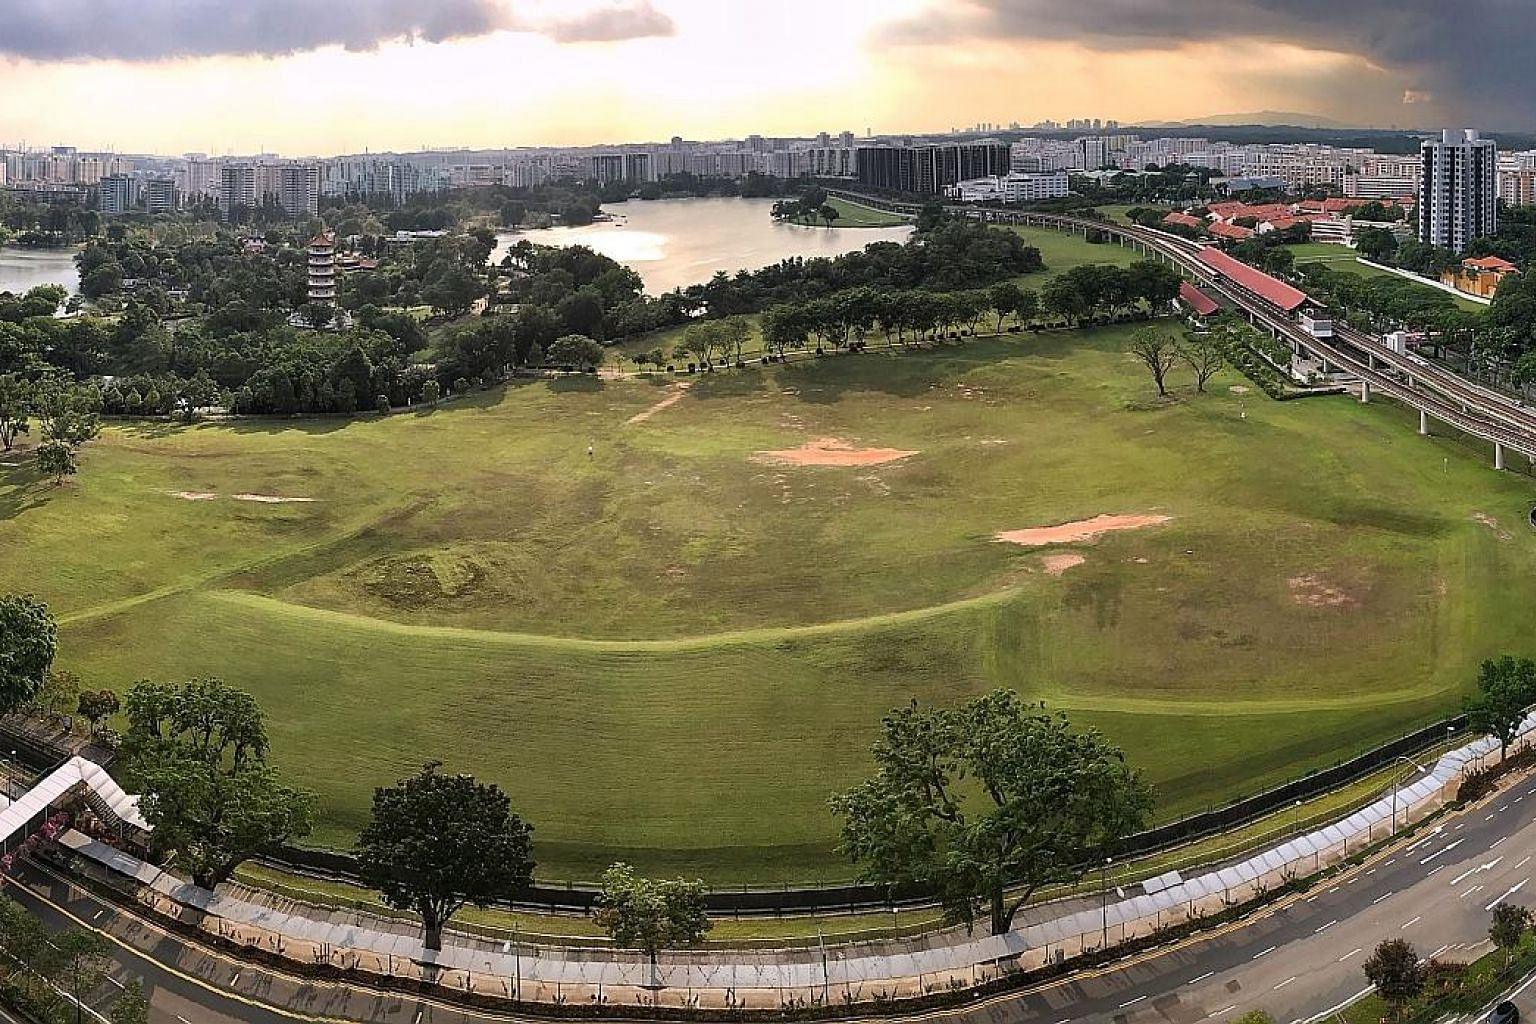 While residents cheer the move to turn this 7ha plot of land next to the Chinese Garden MRT station into an integrated tourism development, some worry about noise pollution or the area's parks being disturbed. ST PHOTO: KEVIN LIM